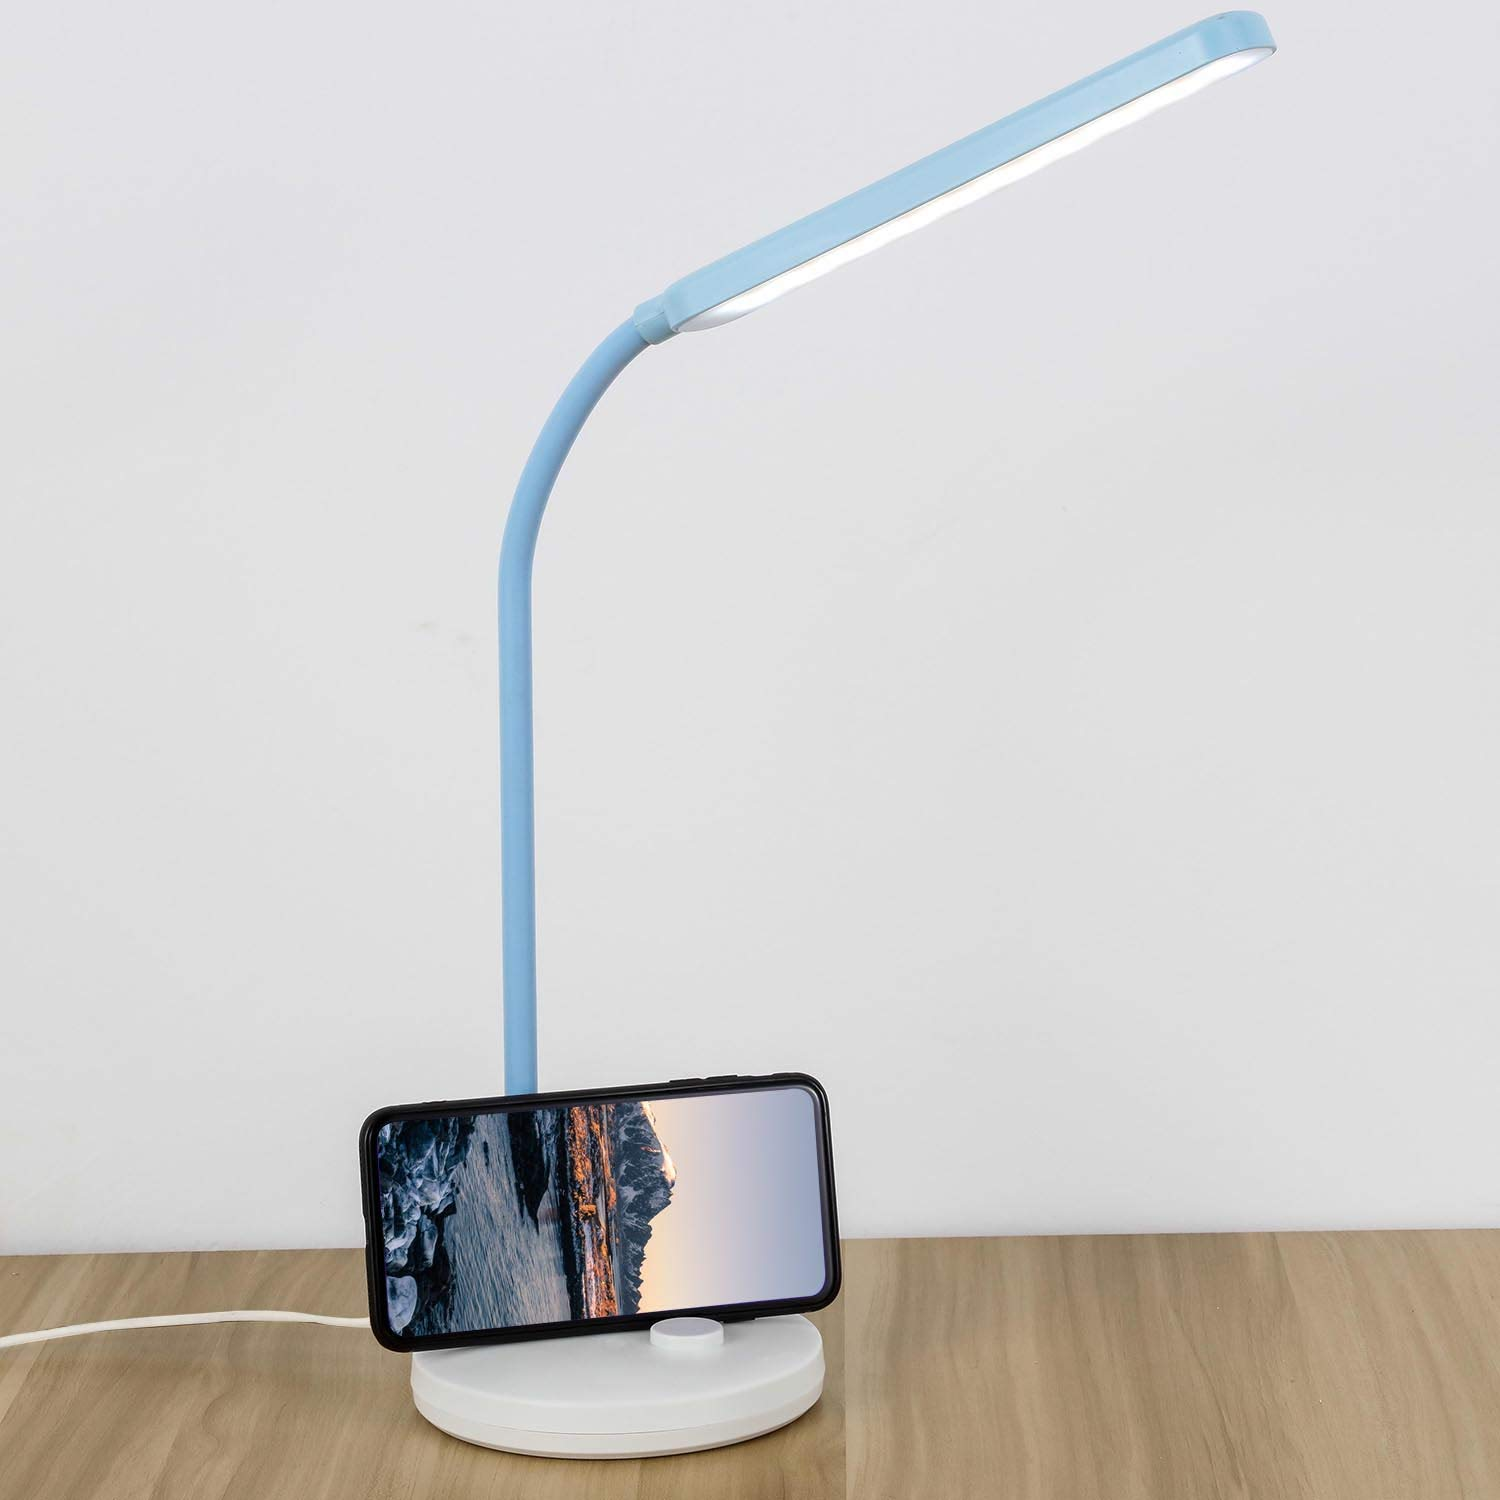 COOLOUS LED Table Lamp Touch Control Dimmable Desk Lamp 5W Multi-Function Adjustable Touch Switch Eye-Care with 3 Mode Brightness Levels